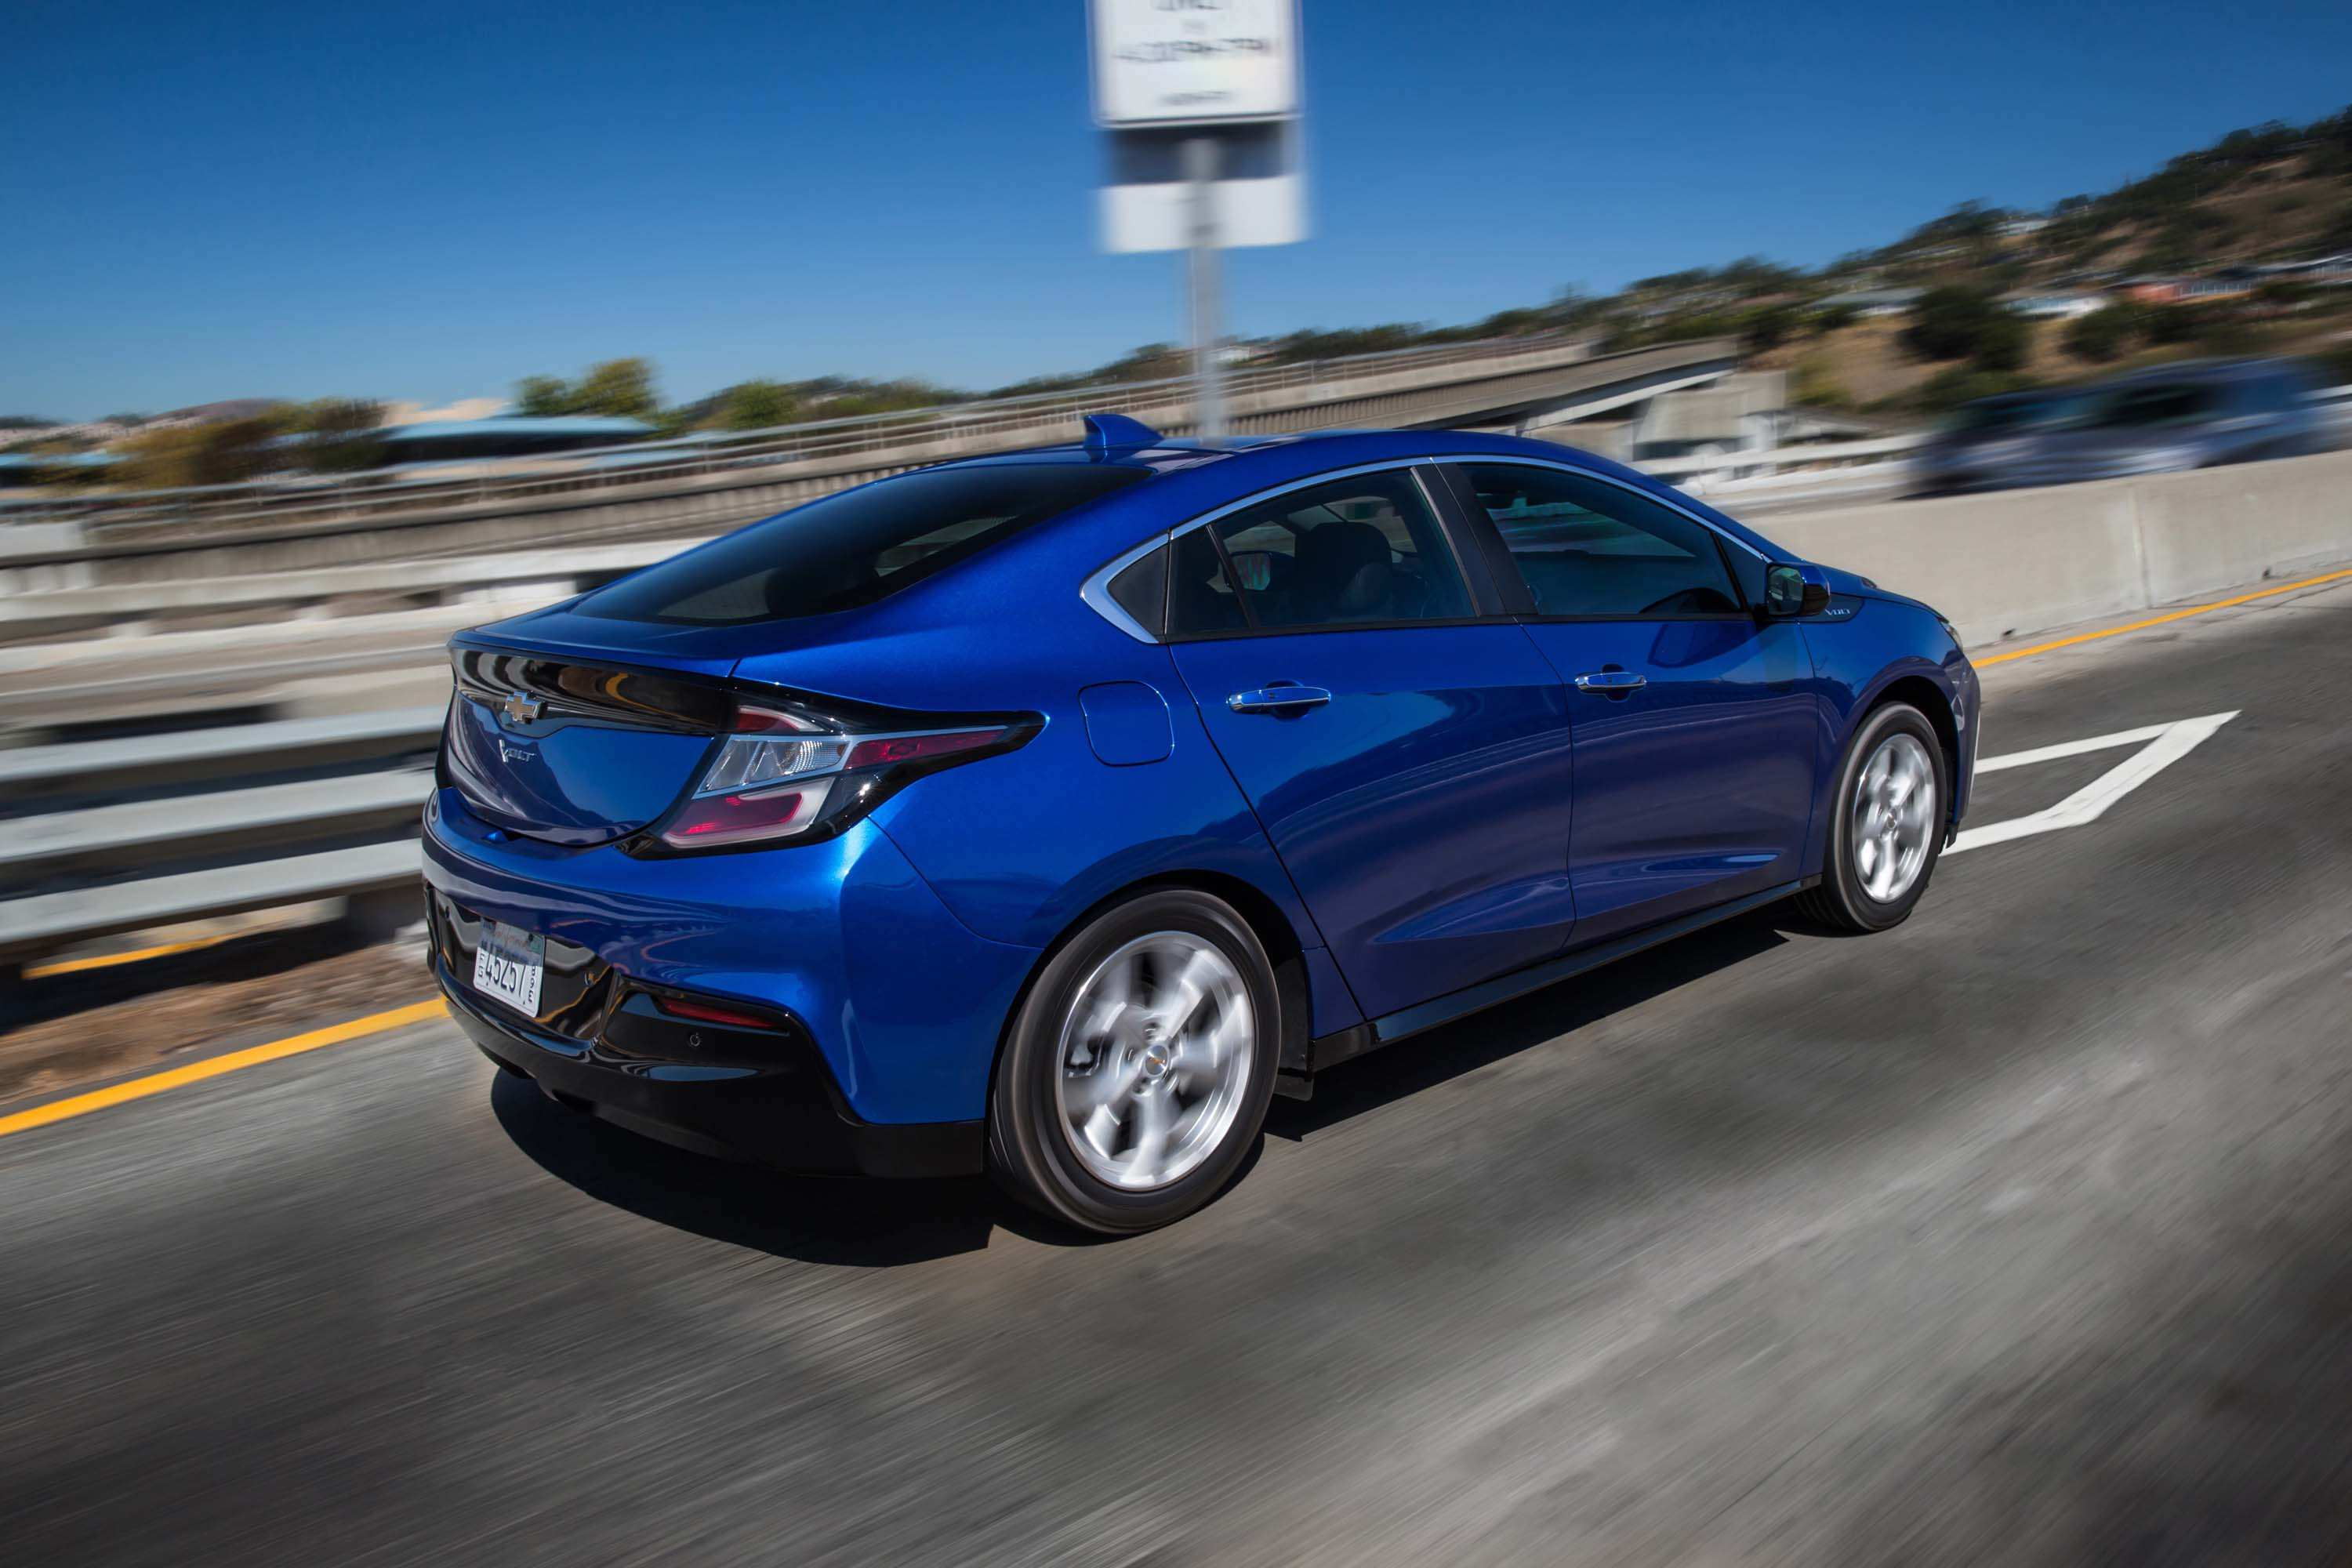 65 A 2020 Chevy Volt Wallpaper